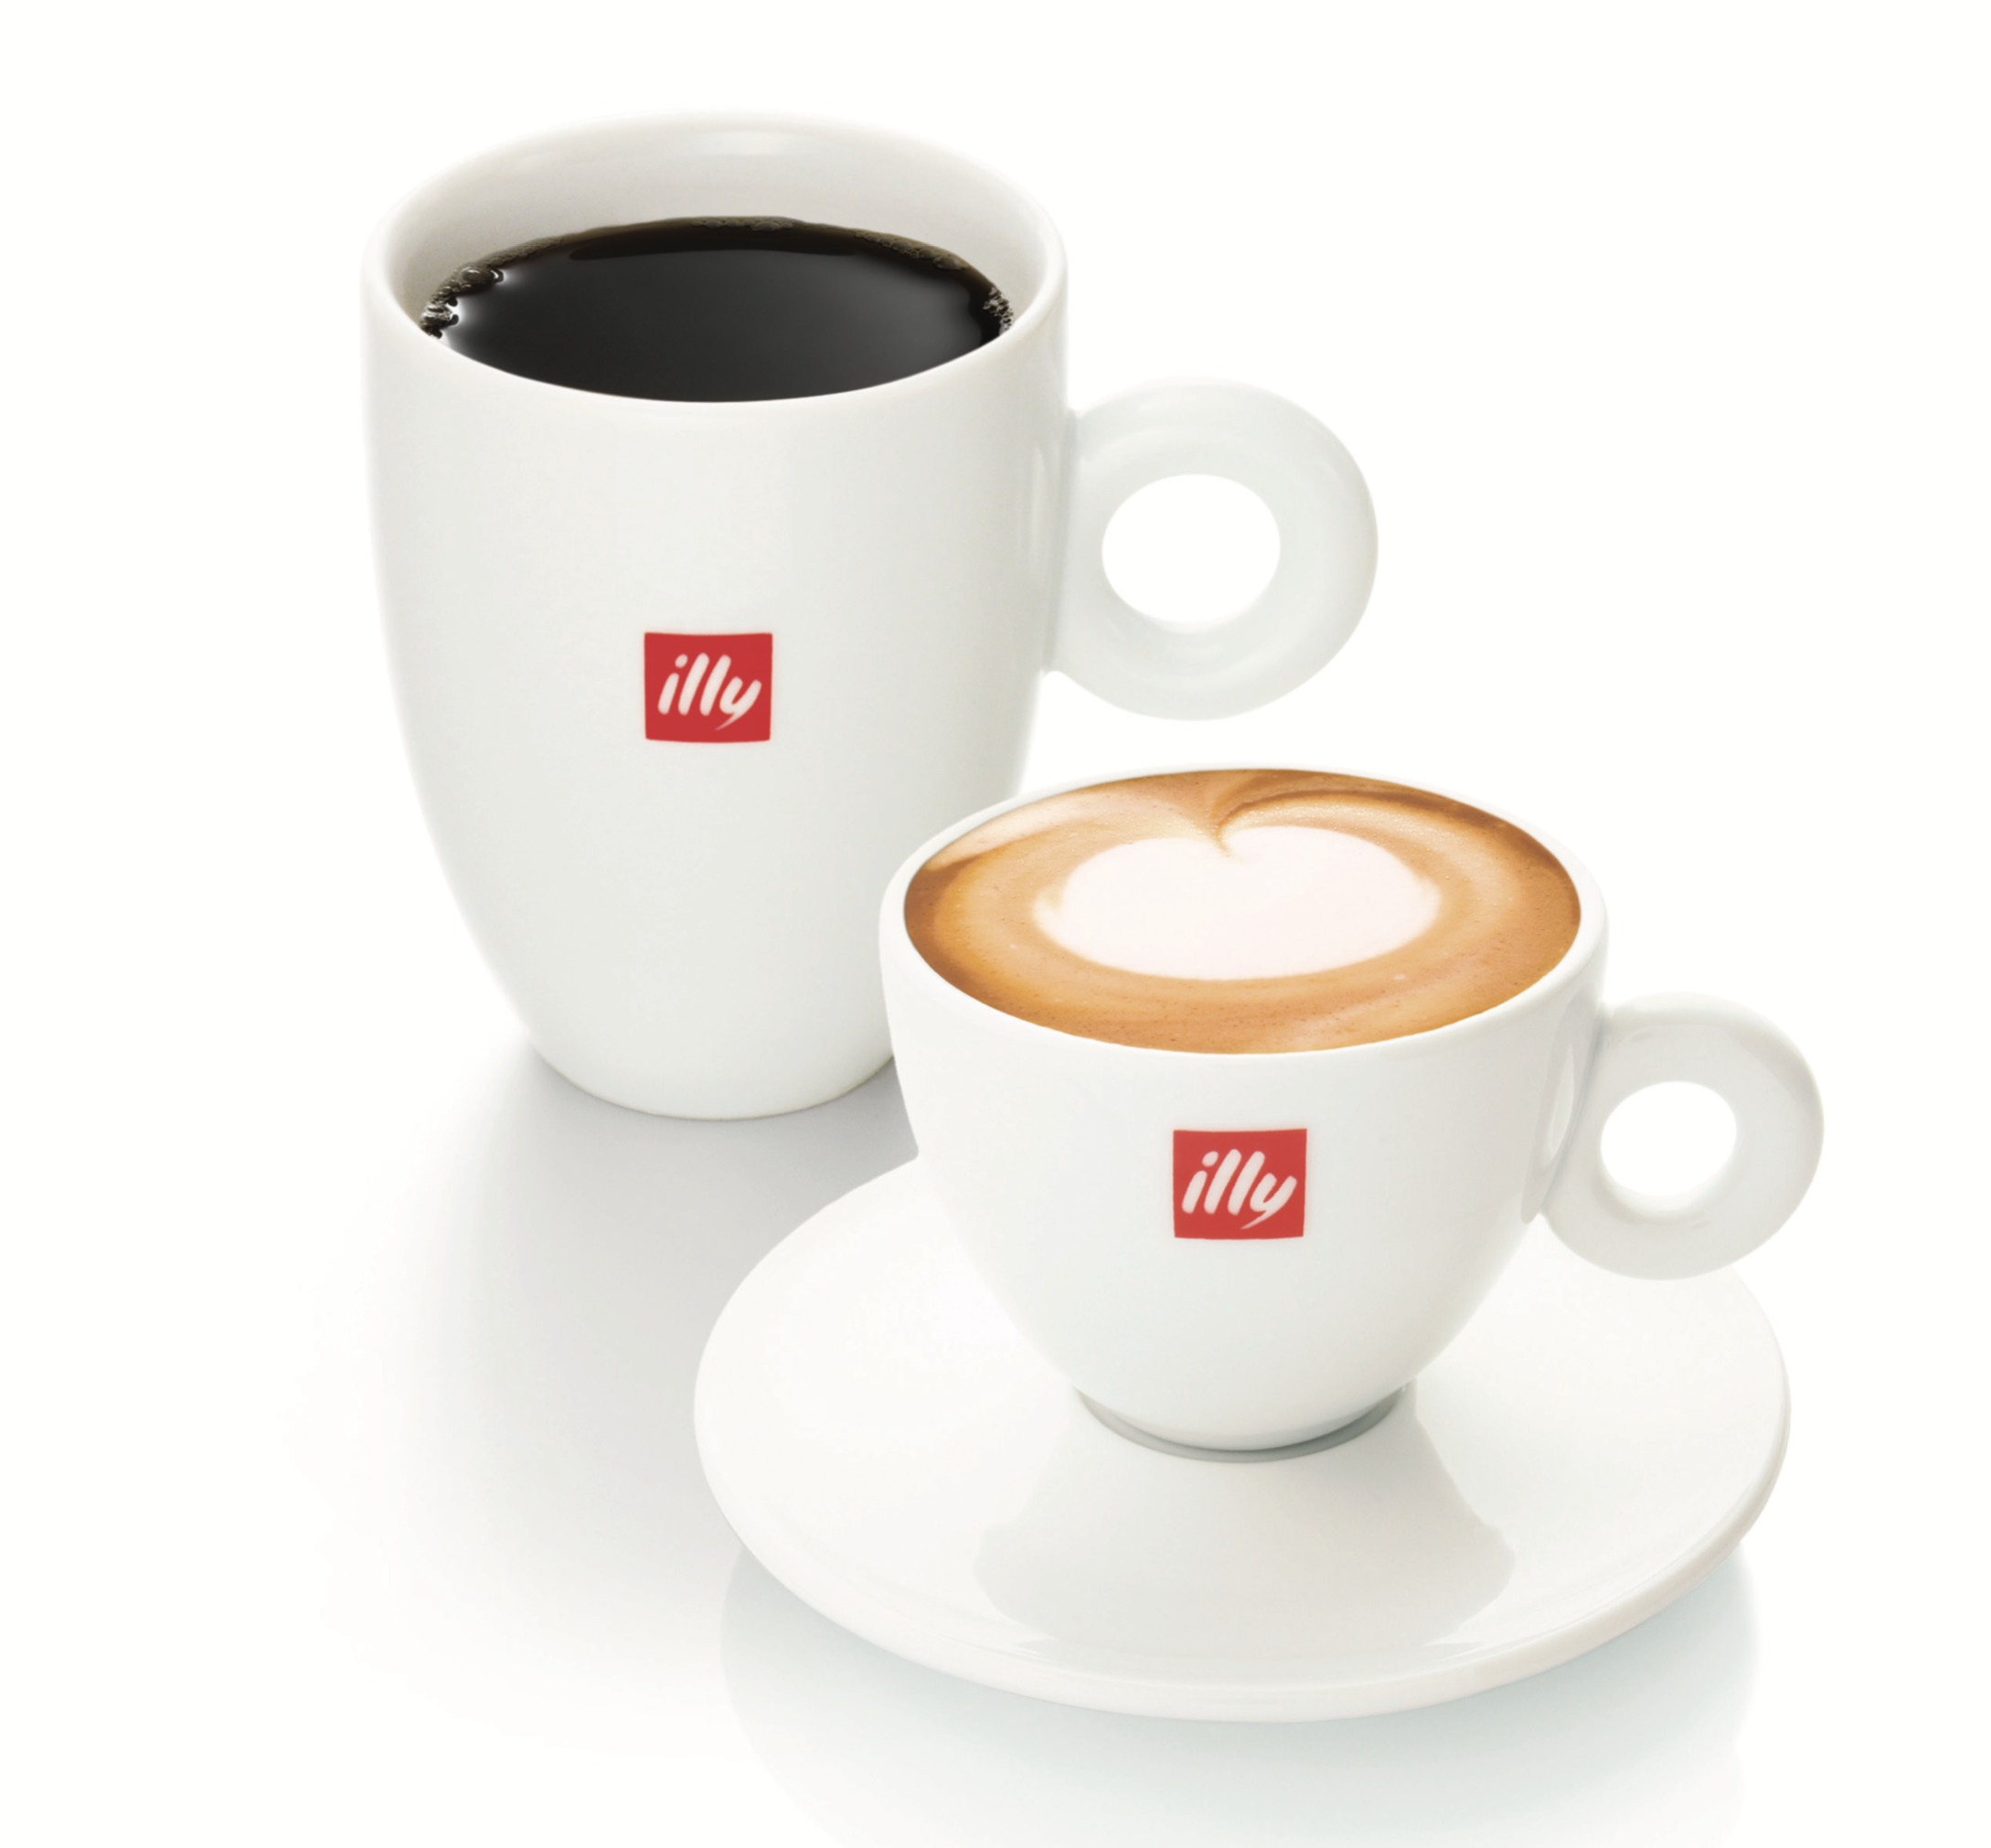 illy-photo-ad-2.png